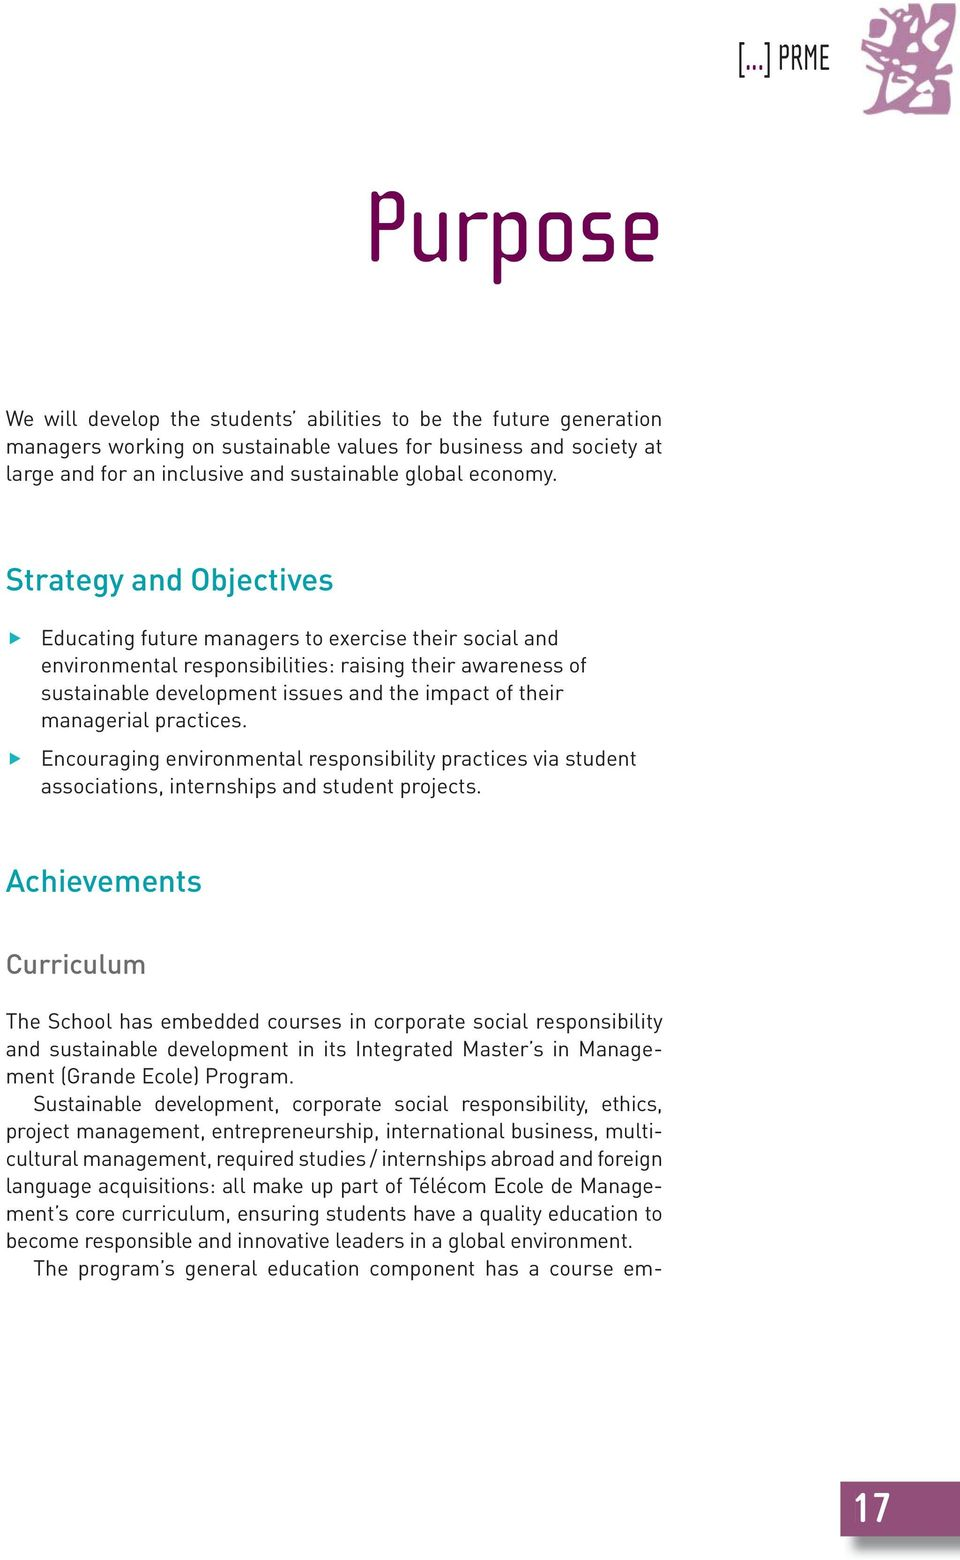 Strategy and Objectives Educating future managers to exercise their social and environmental responsibilities: raising their awareness of sustainable development issues and the impact of their